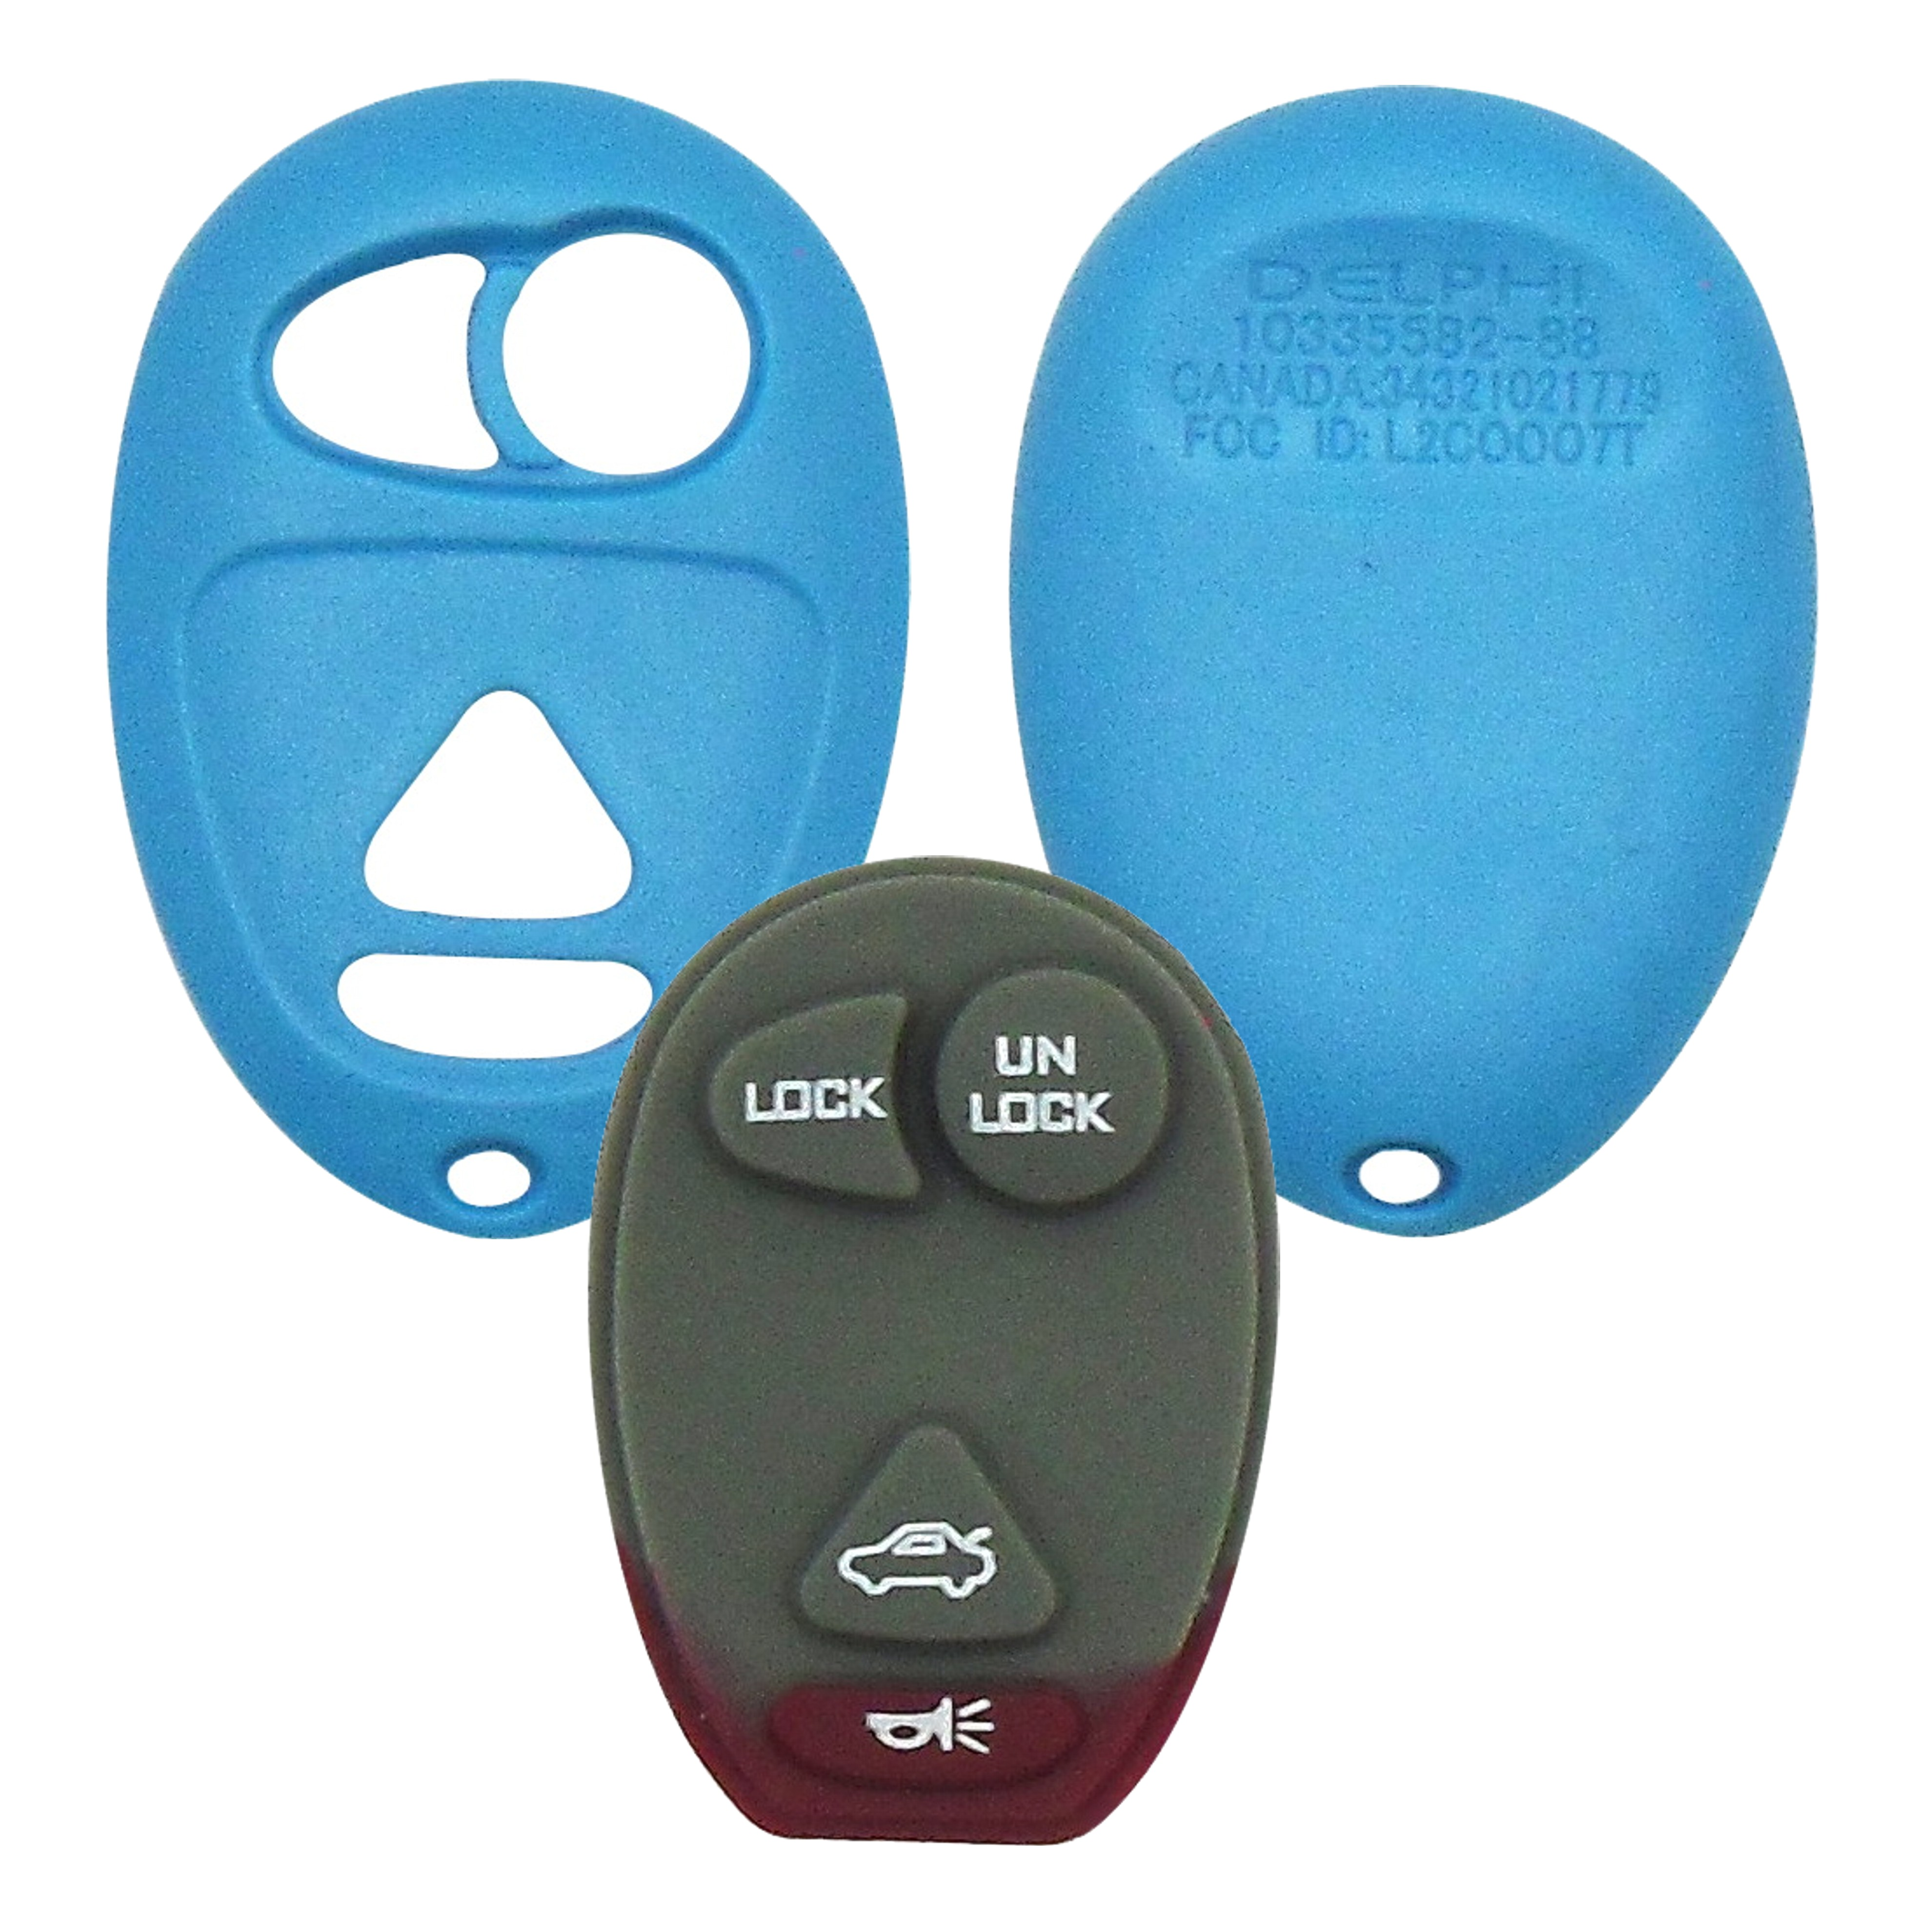 GM - 4 Button Teal Remote Replacement Shell